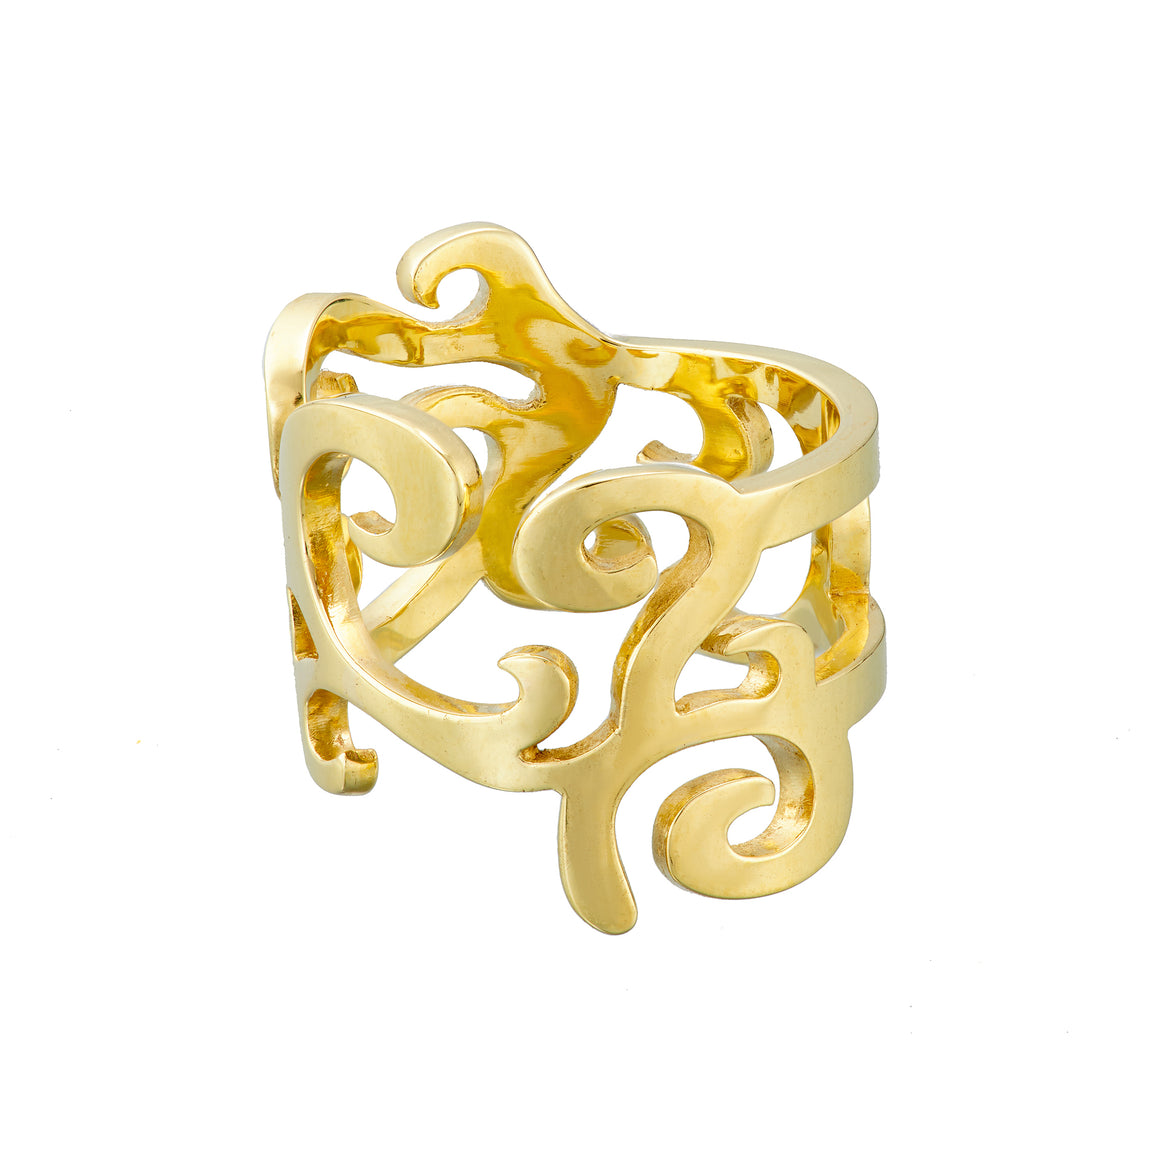 ella green jewellery irish designer yellow gold dream ring